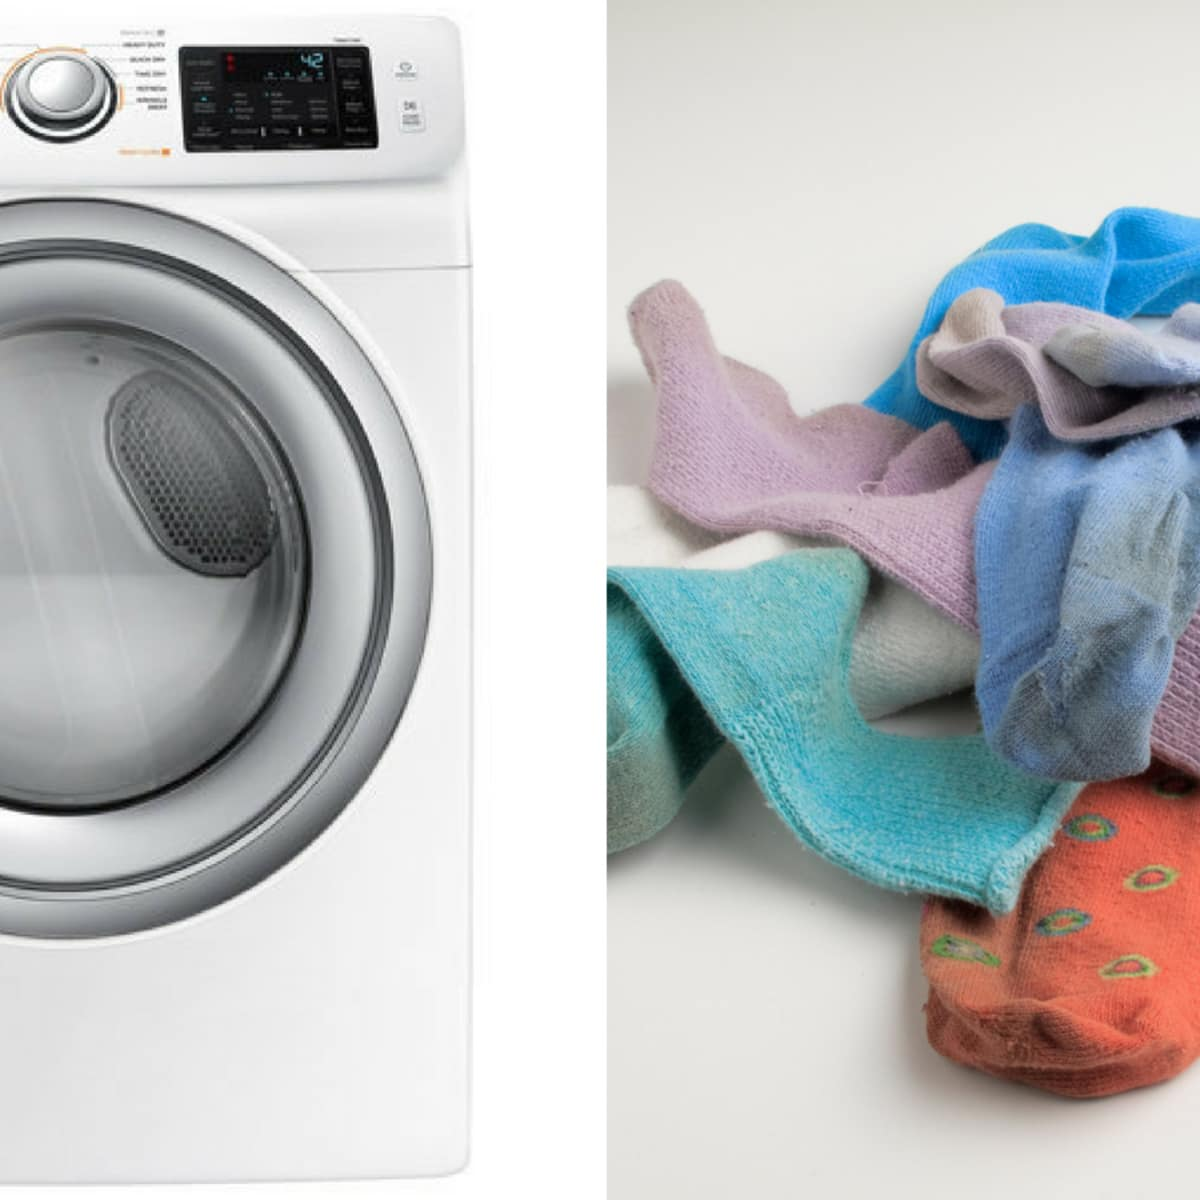 What happens to socks that get lost in the wash - Reviewed Laundry